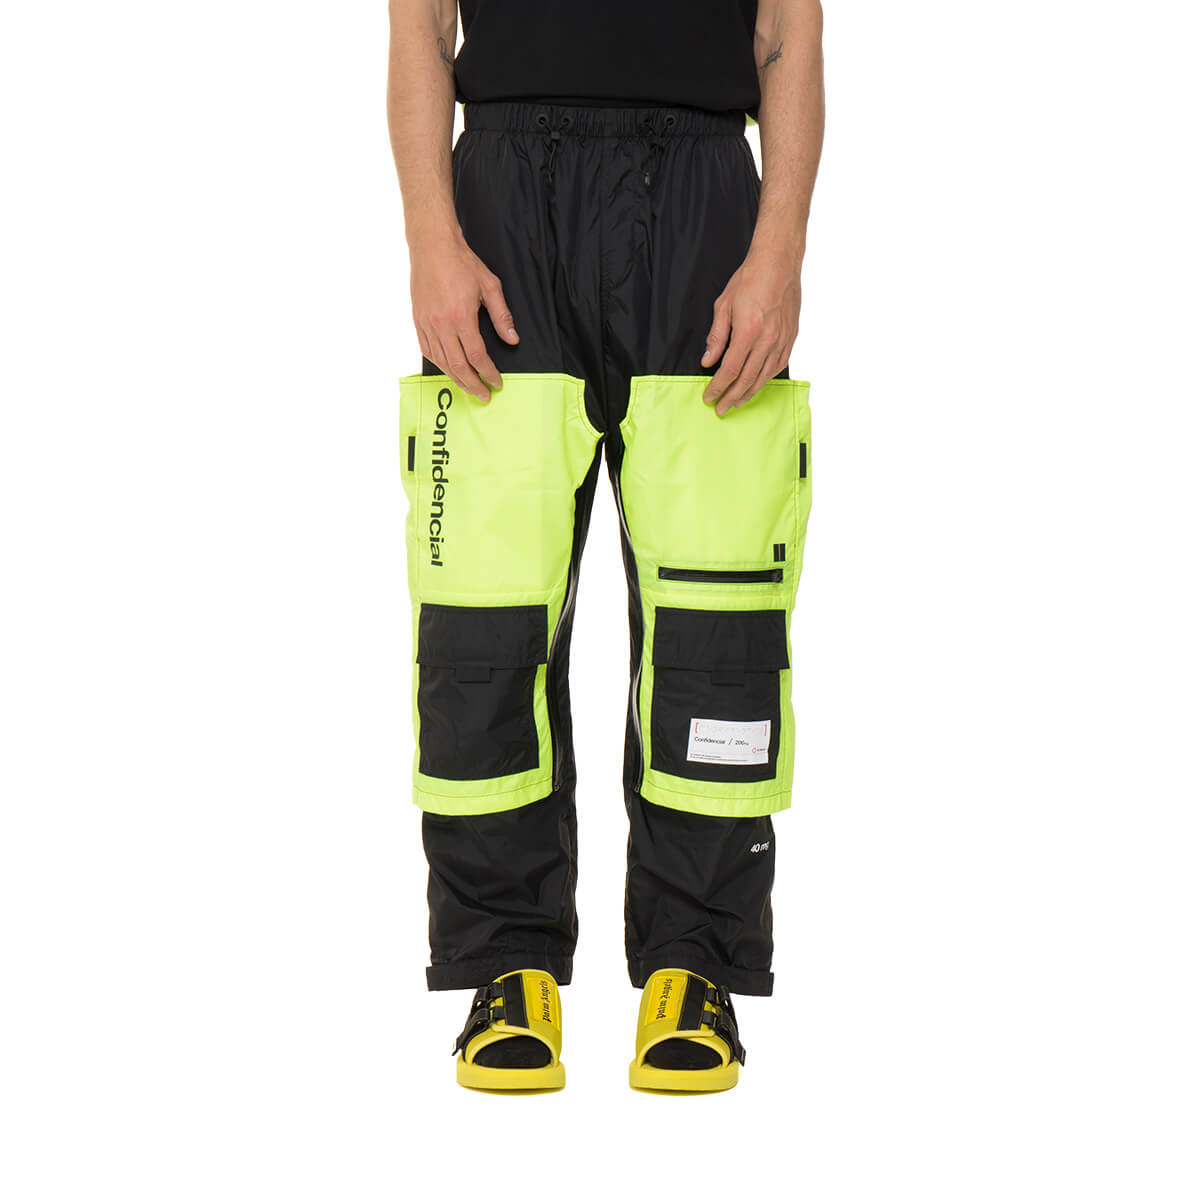 good top-rated quality fashionable style Best price on the market at italist | Marcelo Burlon Marcelo Burlon Braille  Square Pants